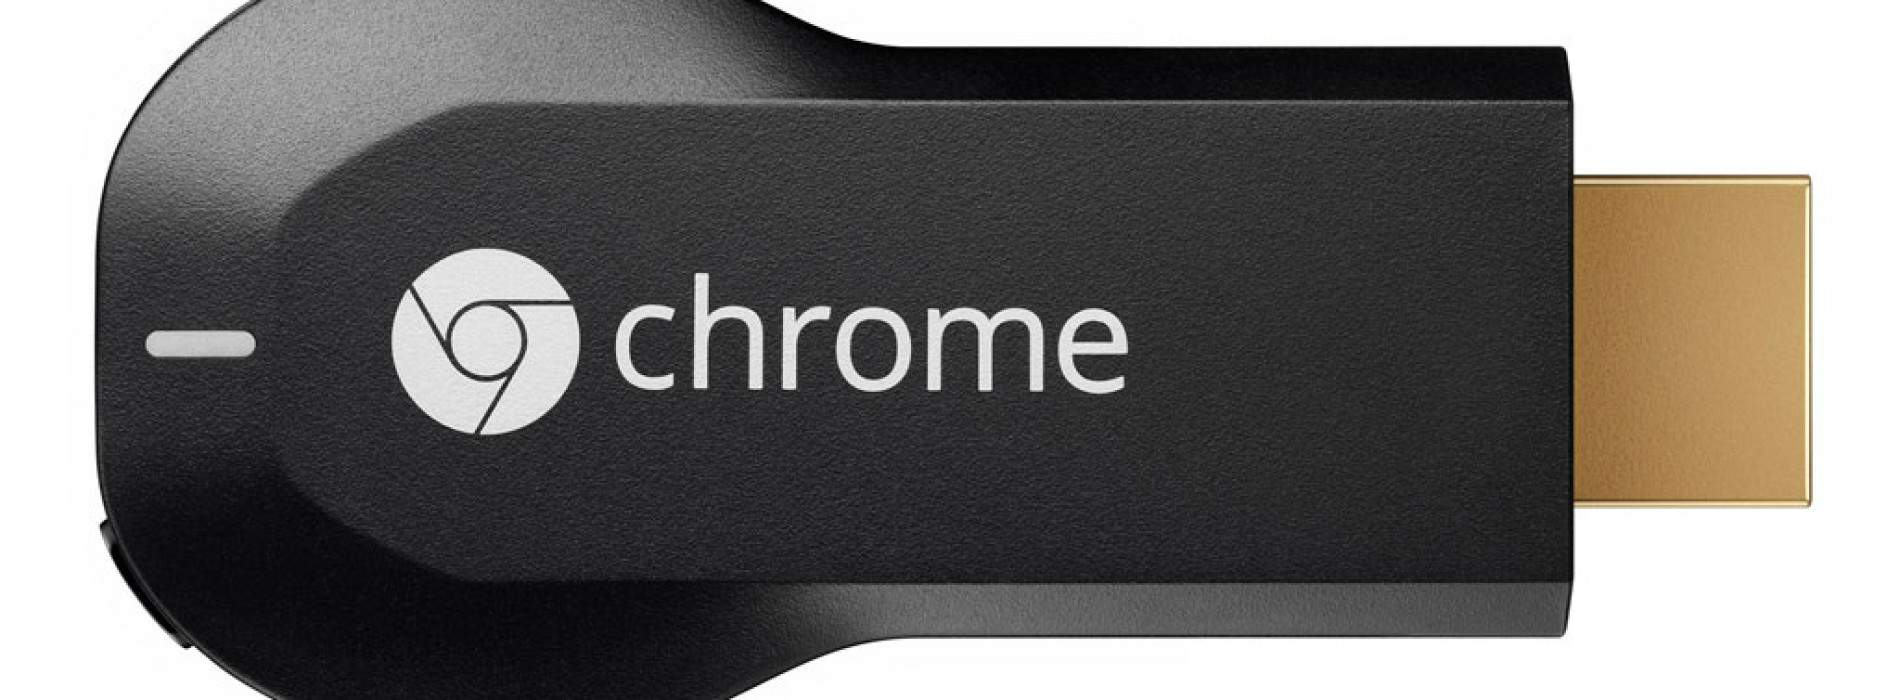 Chromecast, ya disponible por 35 euros